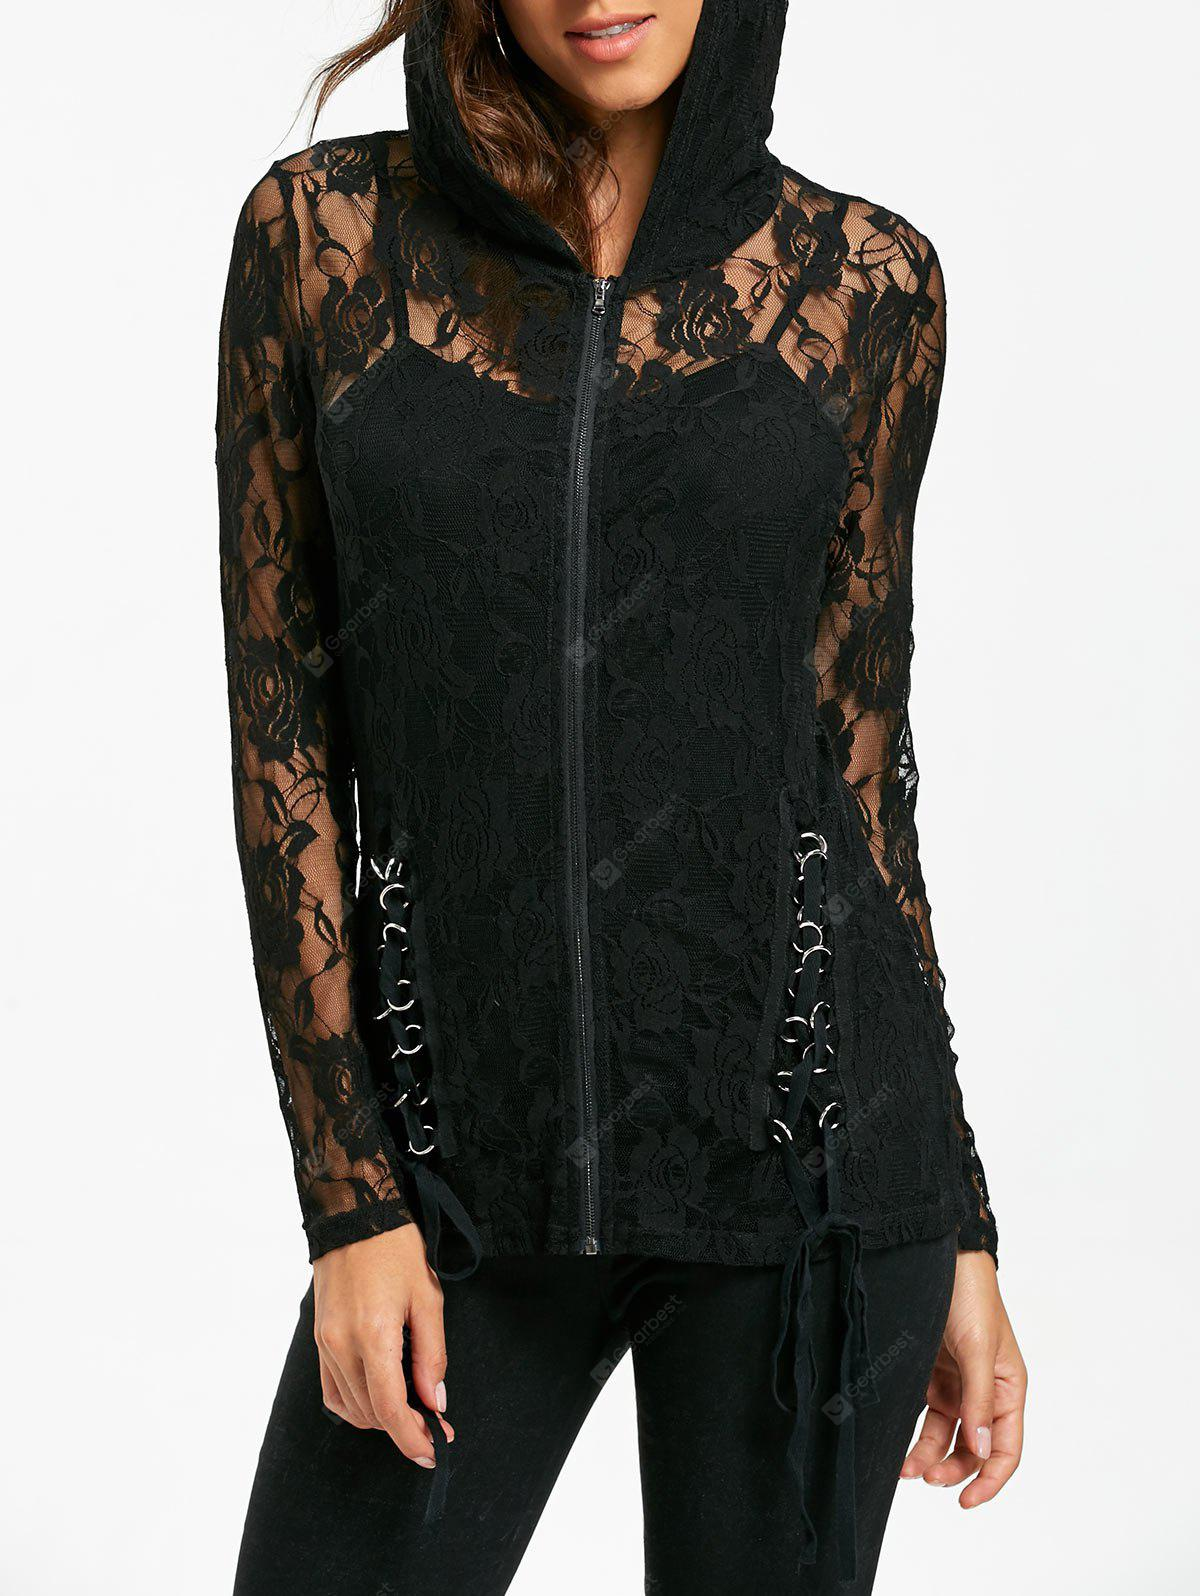 Lace Up Sheer Lace Hoodie mit Tank Top